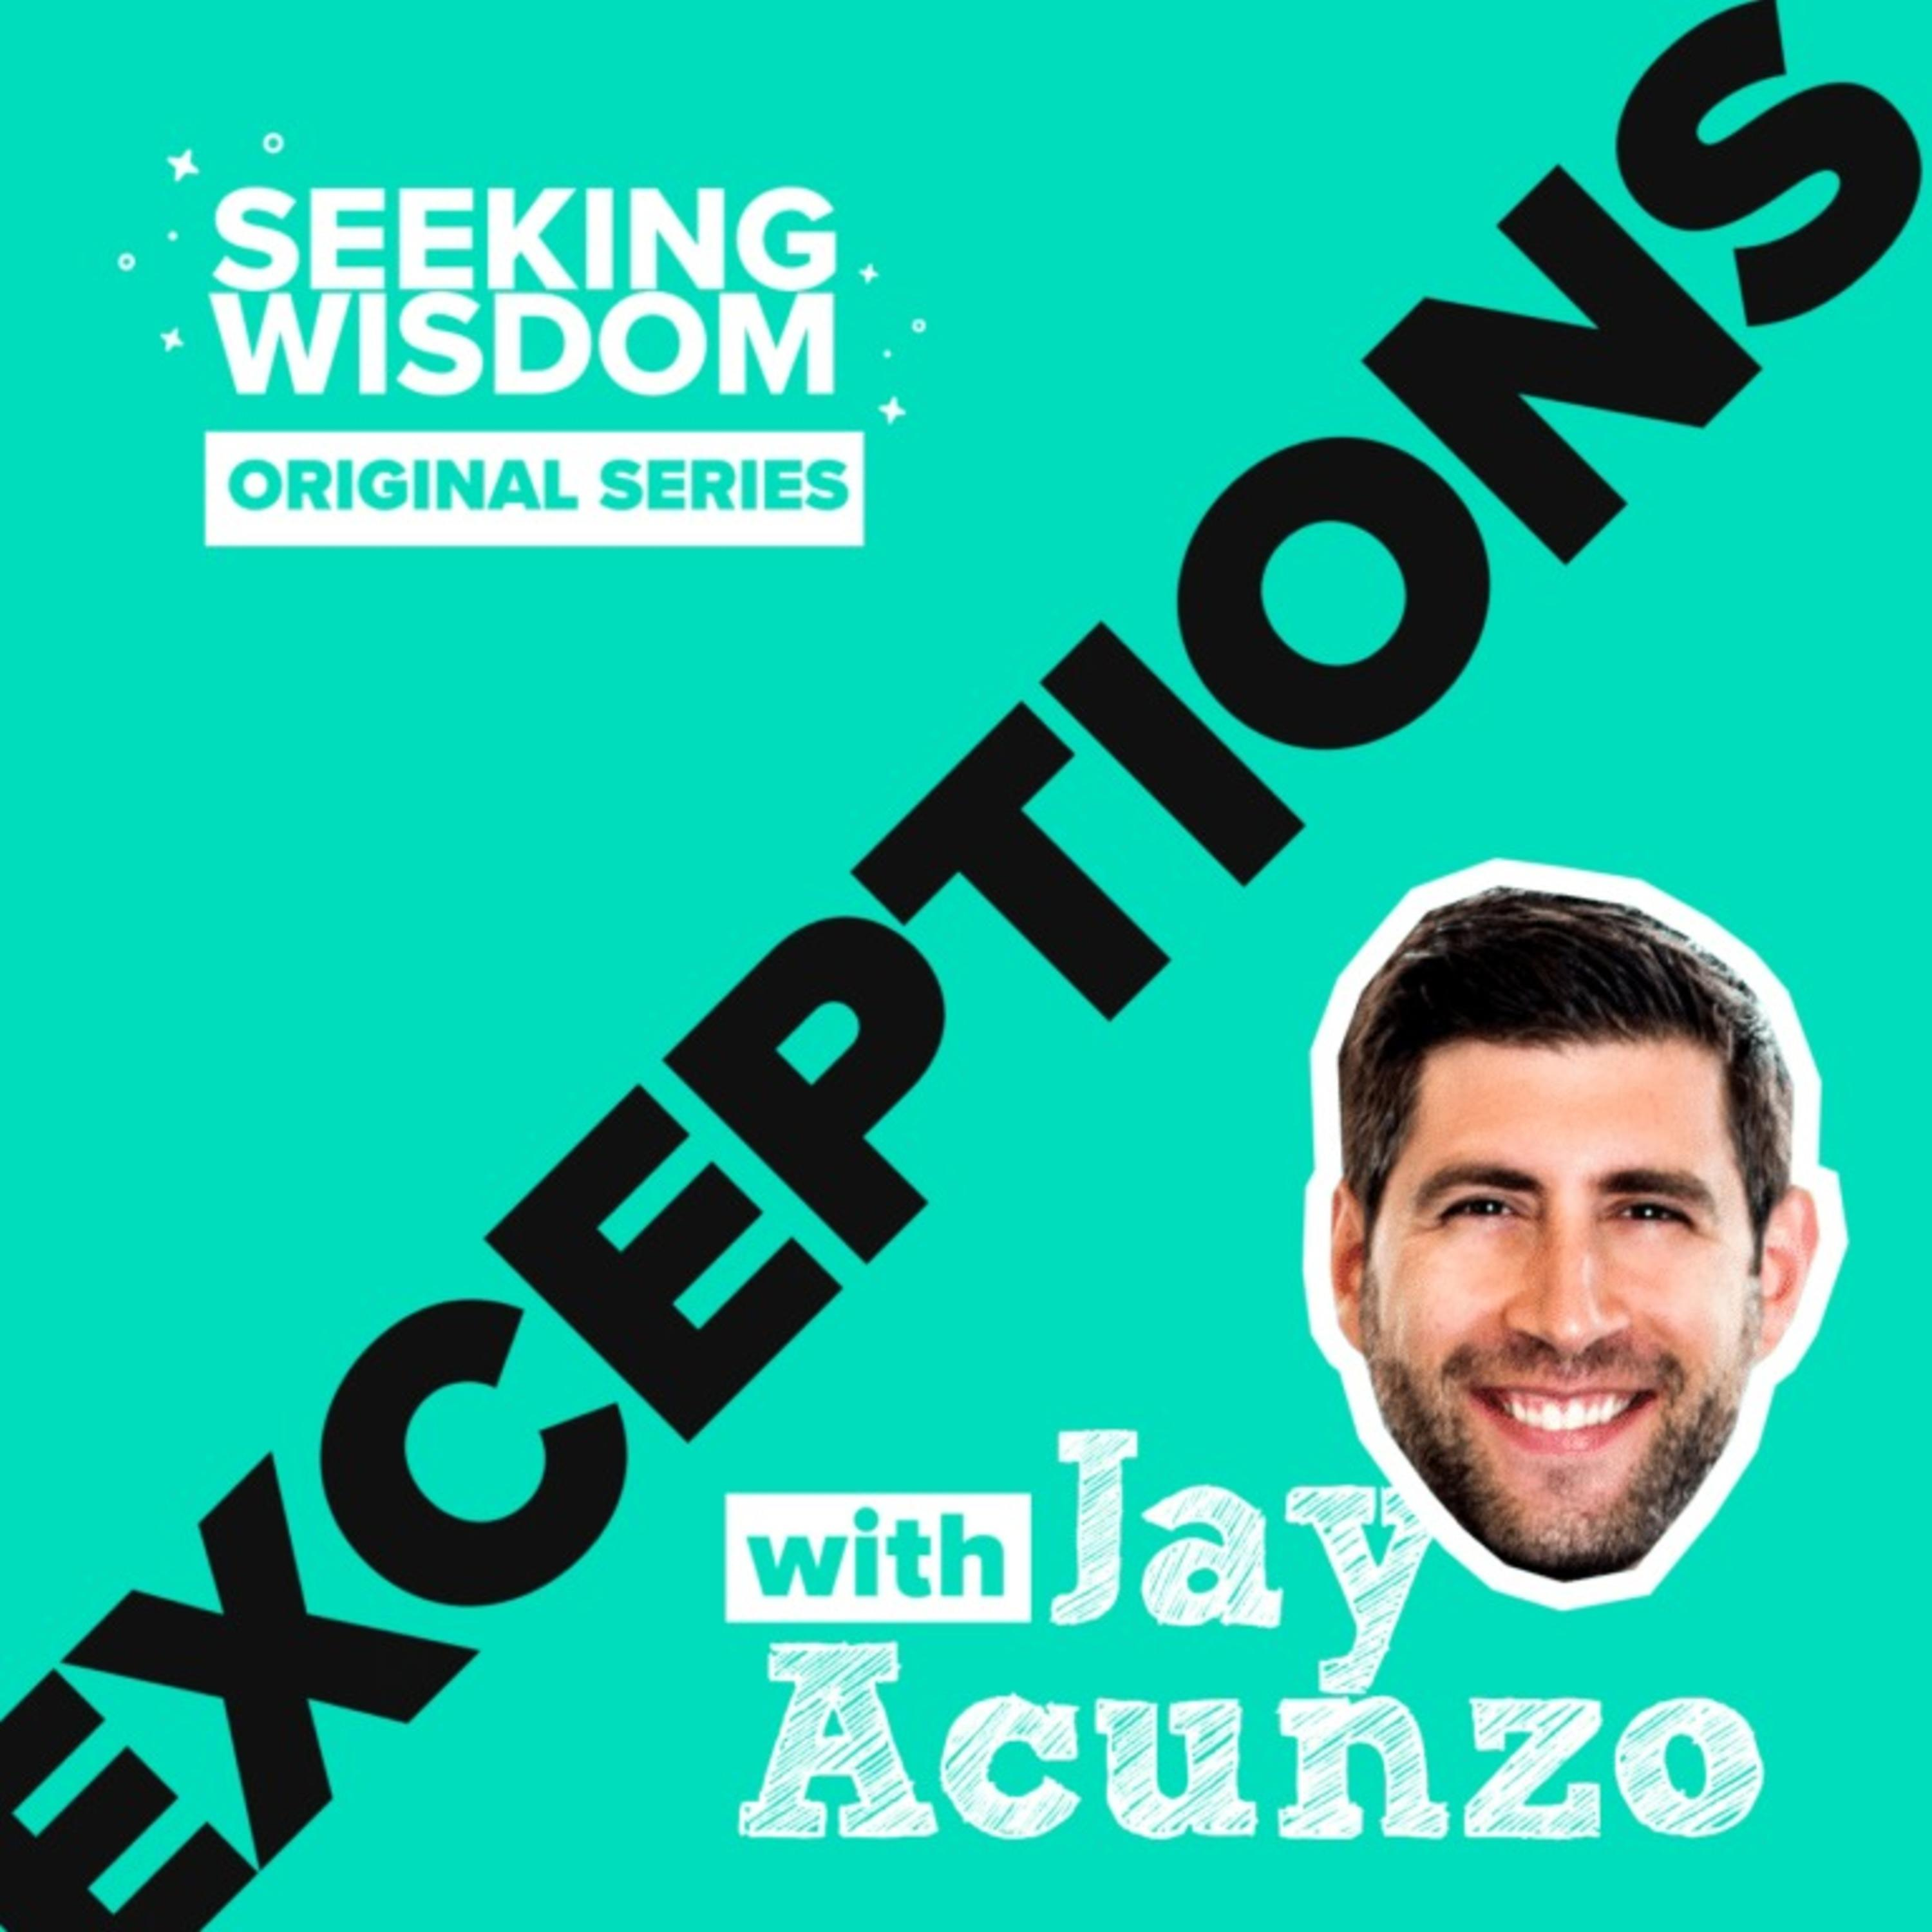 #Exceptions 10: Zoom's Relentless Focus on Customer Experience